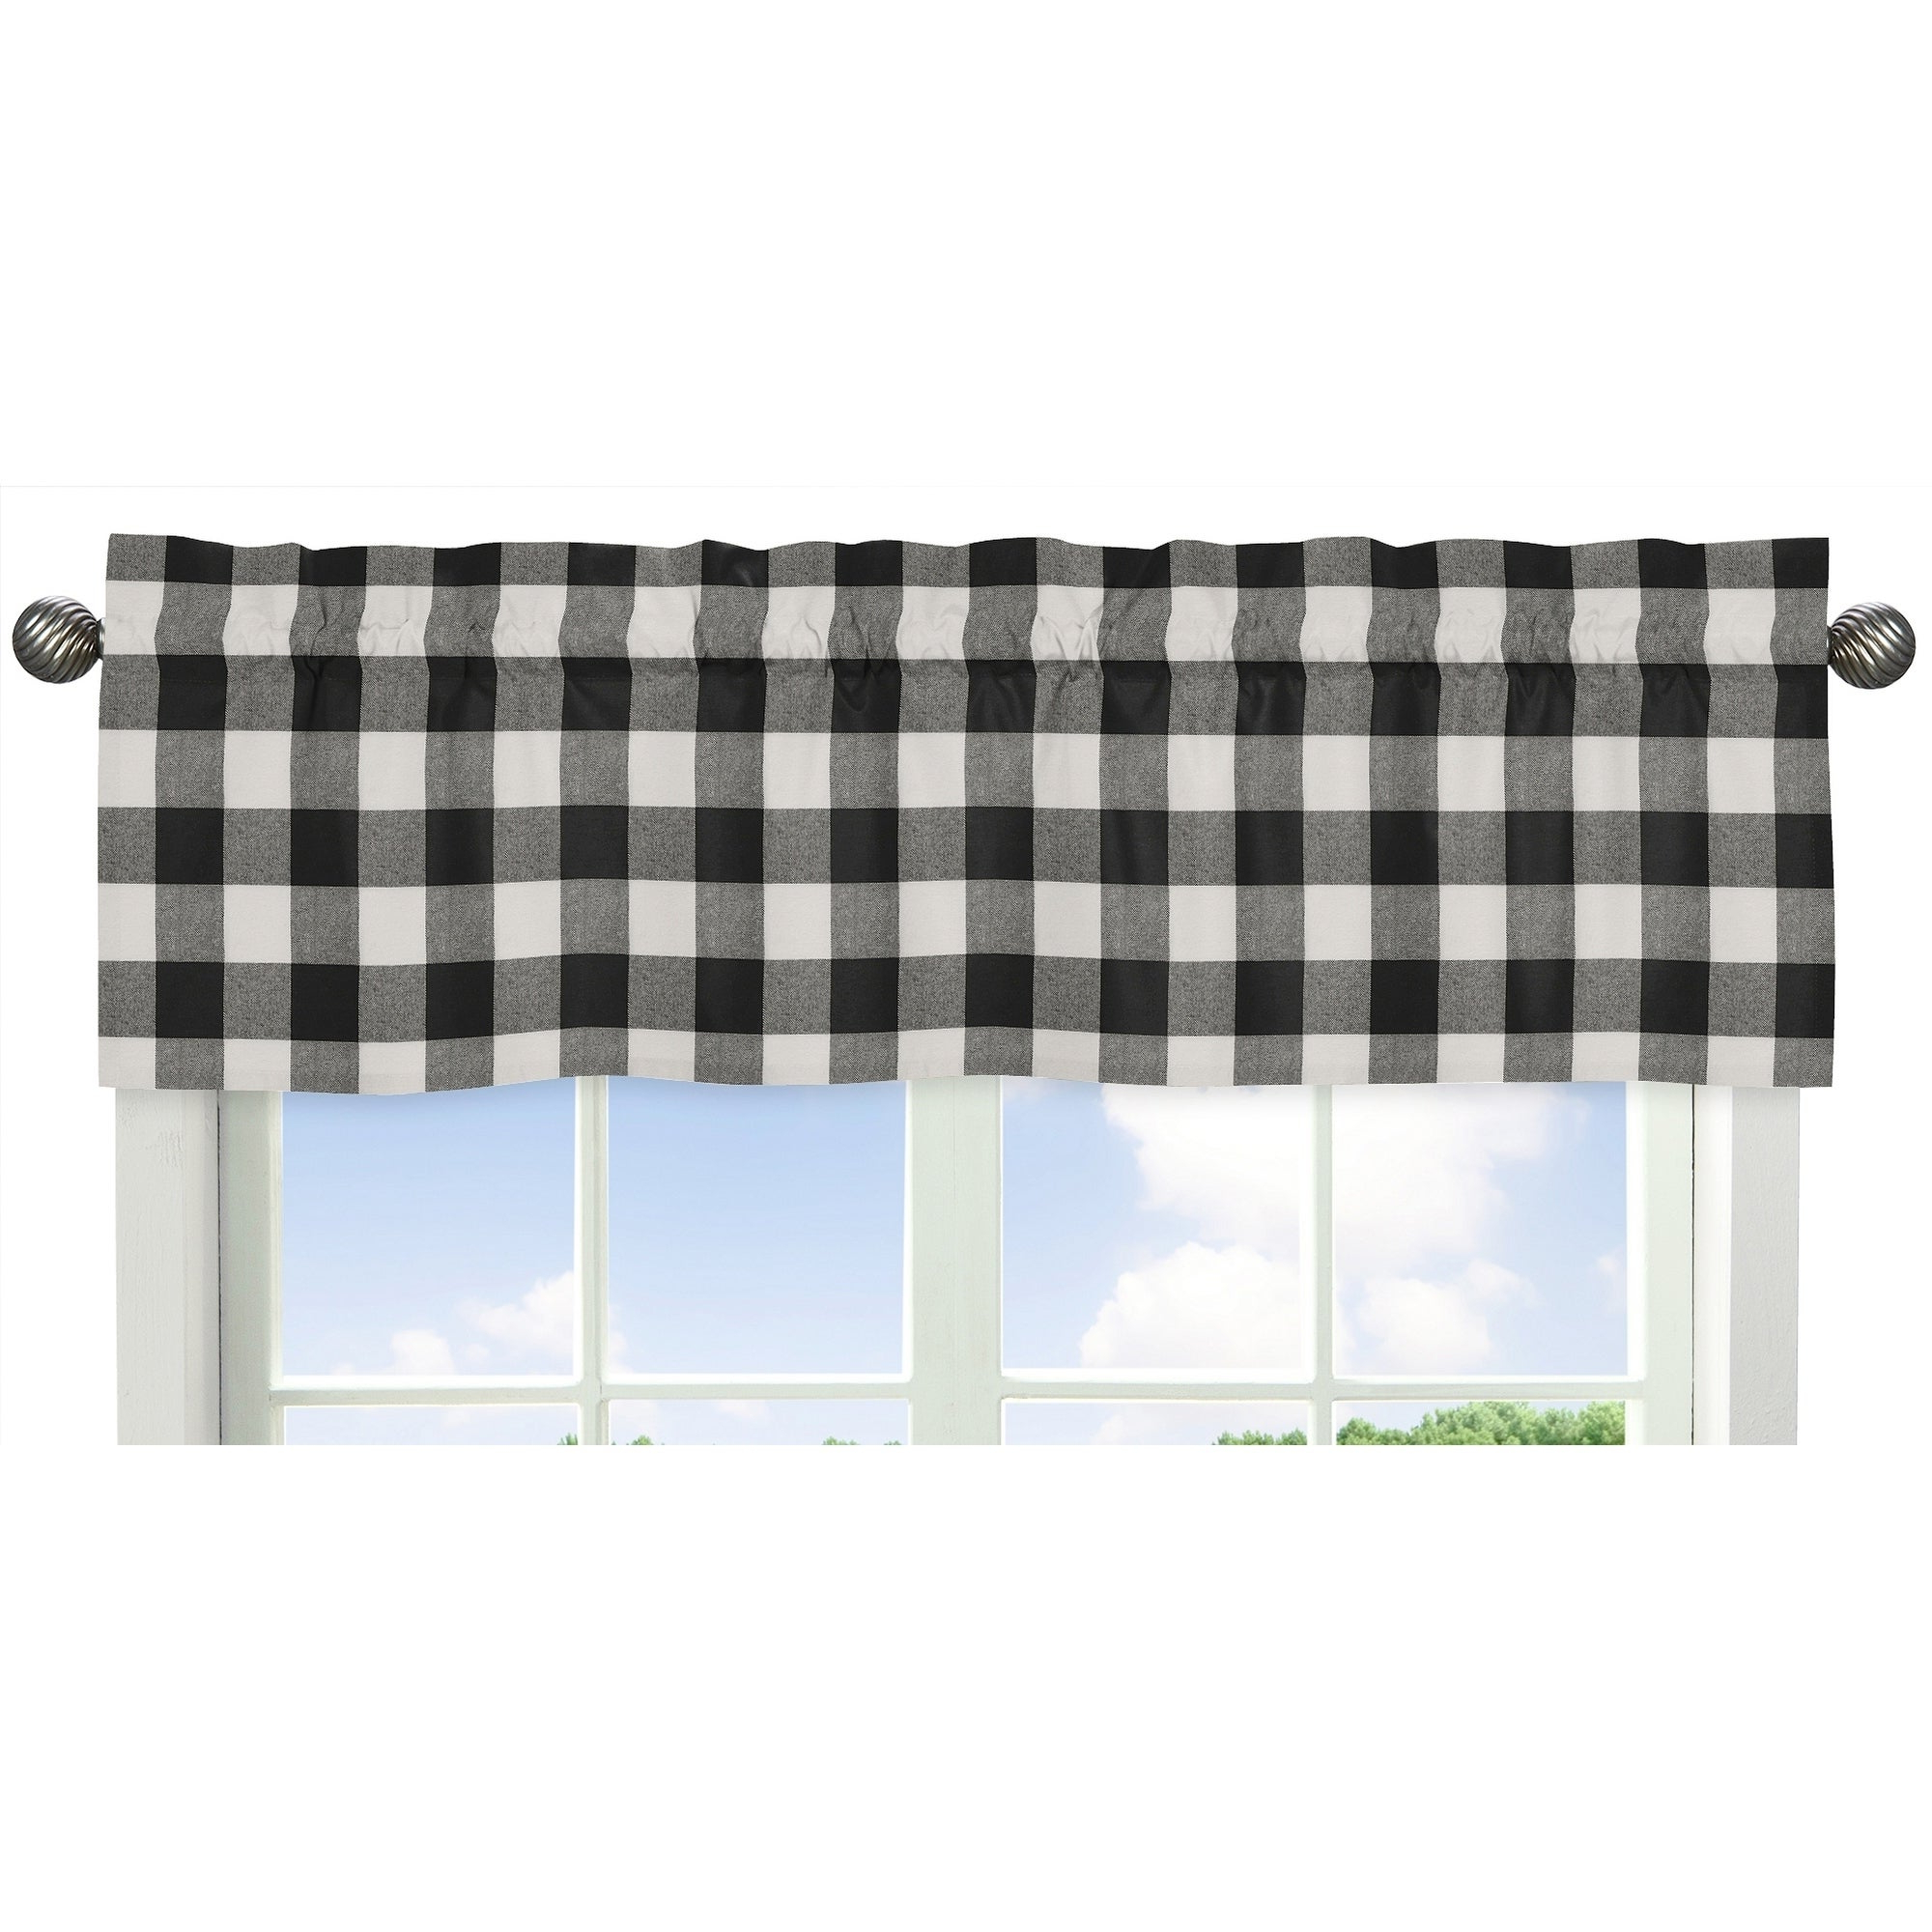 Favorite Sweet Jojo Designs Black And White Rustic Woodland Flannel Buffalo Plaid Check Collection Window Curtain Valance Intended For Grandin Curtain Valances In Black (View 6 of 20)